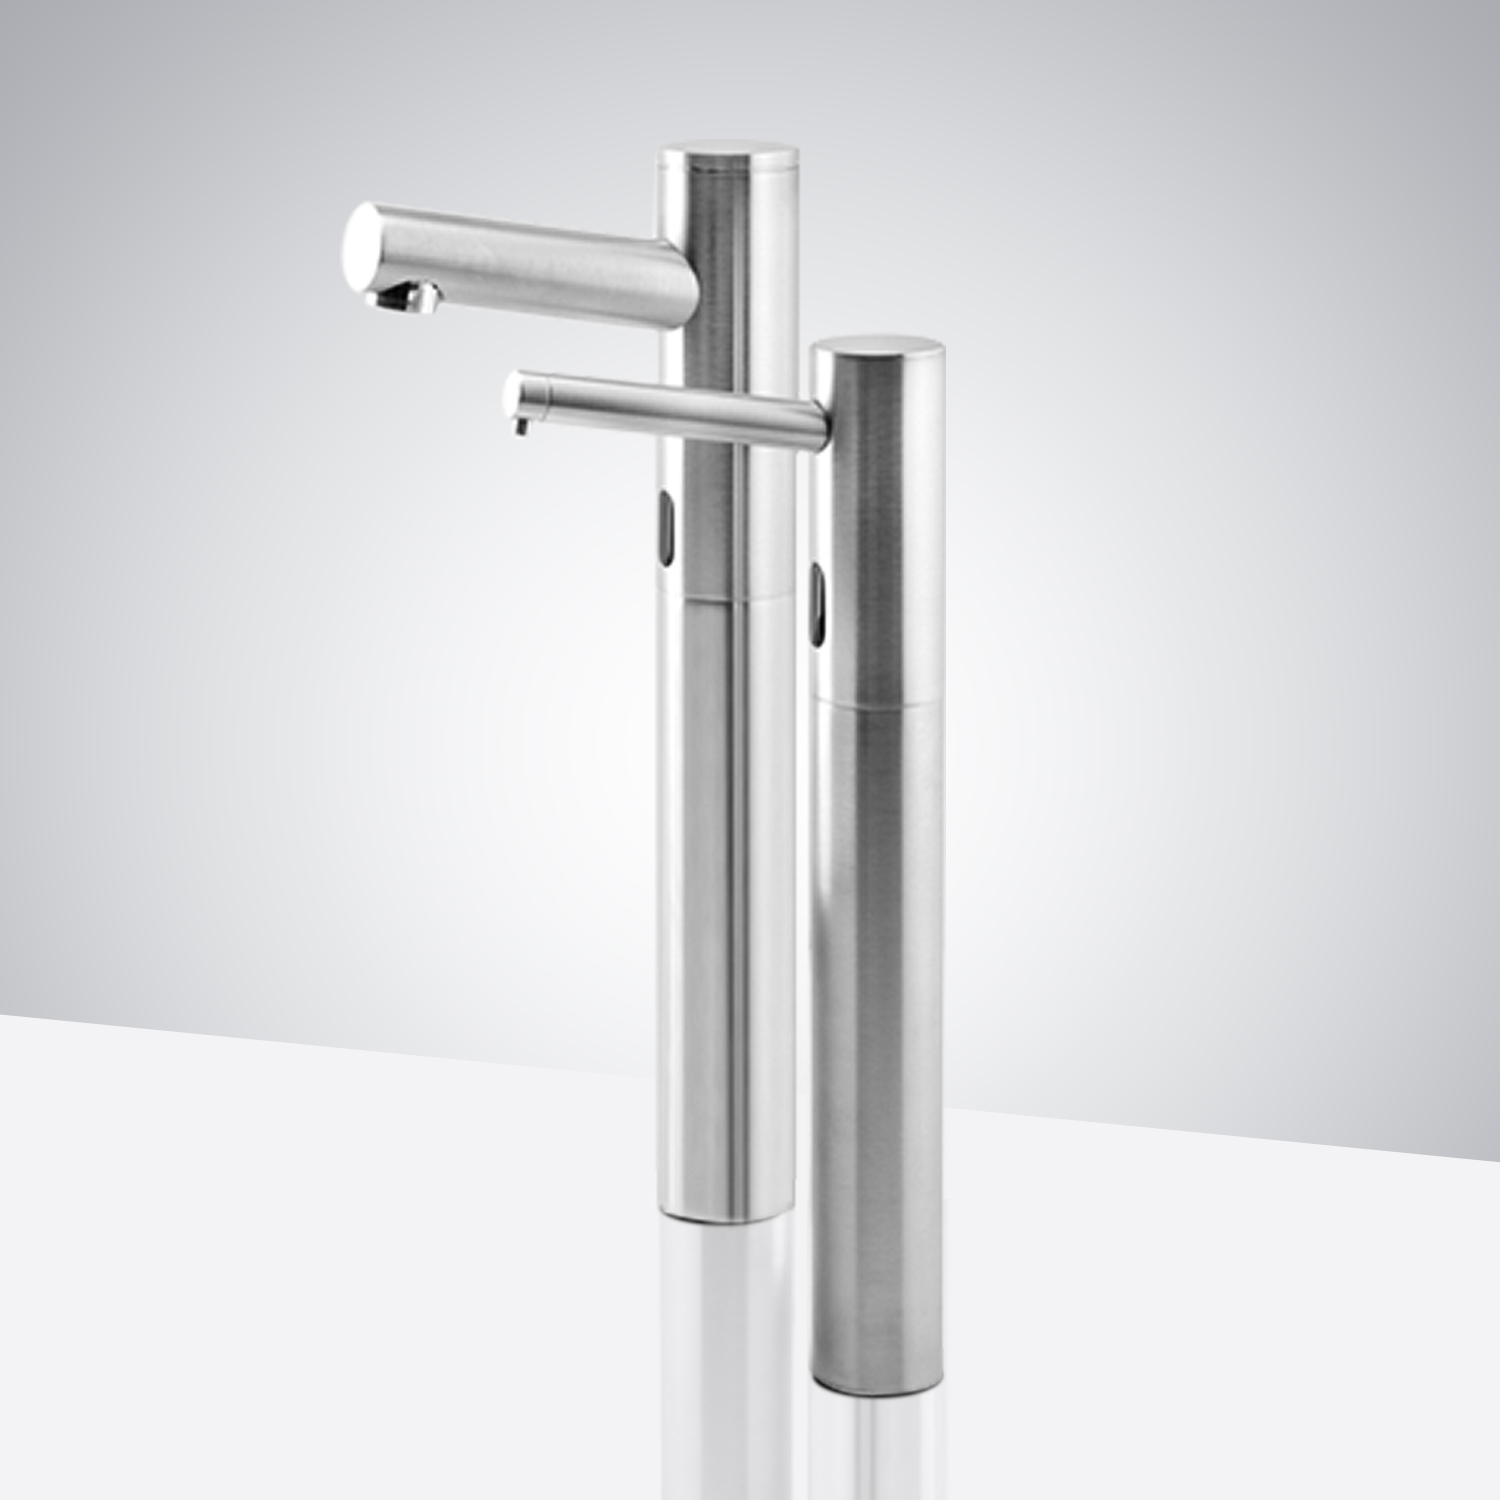 Fontana St. Gallen Tri Pod Chrome Finish Motion Sensor Faucet & Automatic Liquid Soap Dispenser for Restrooms